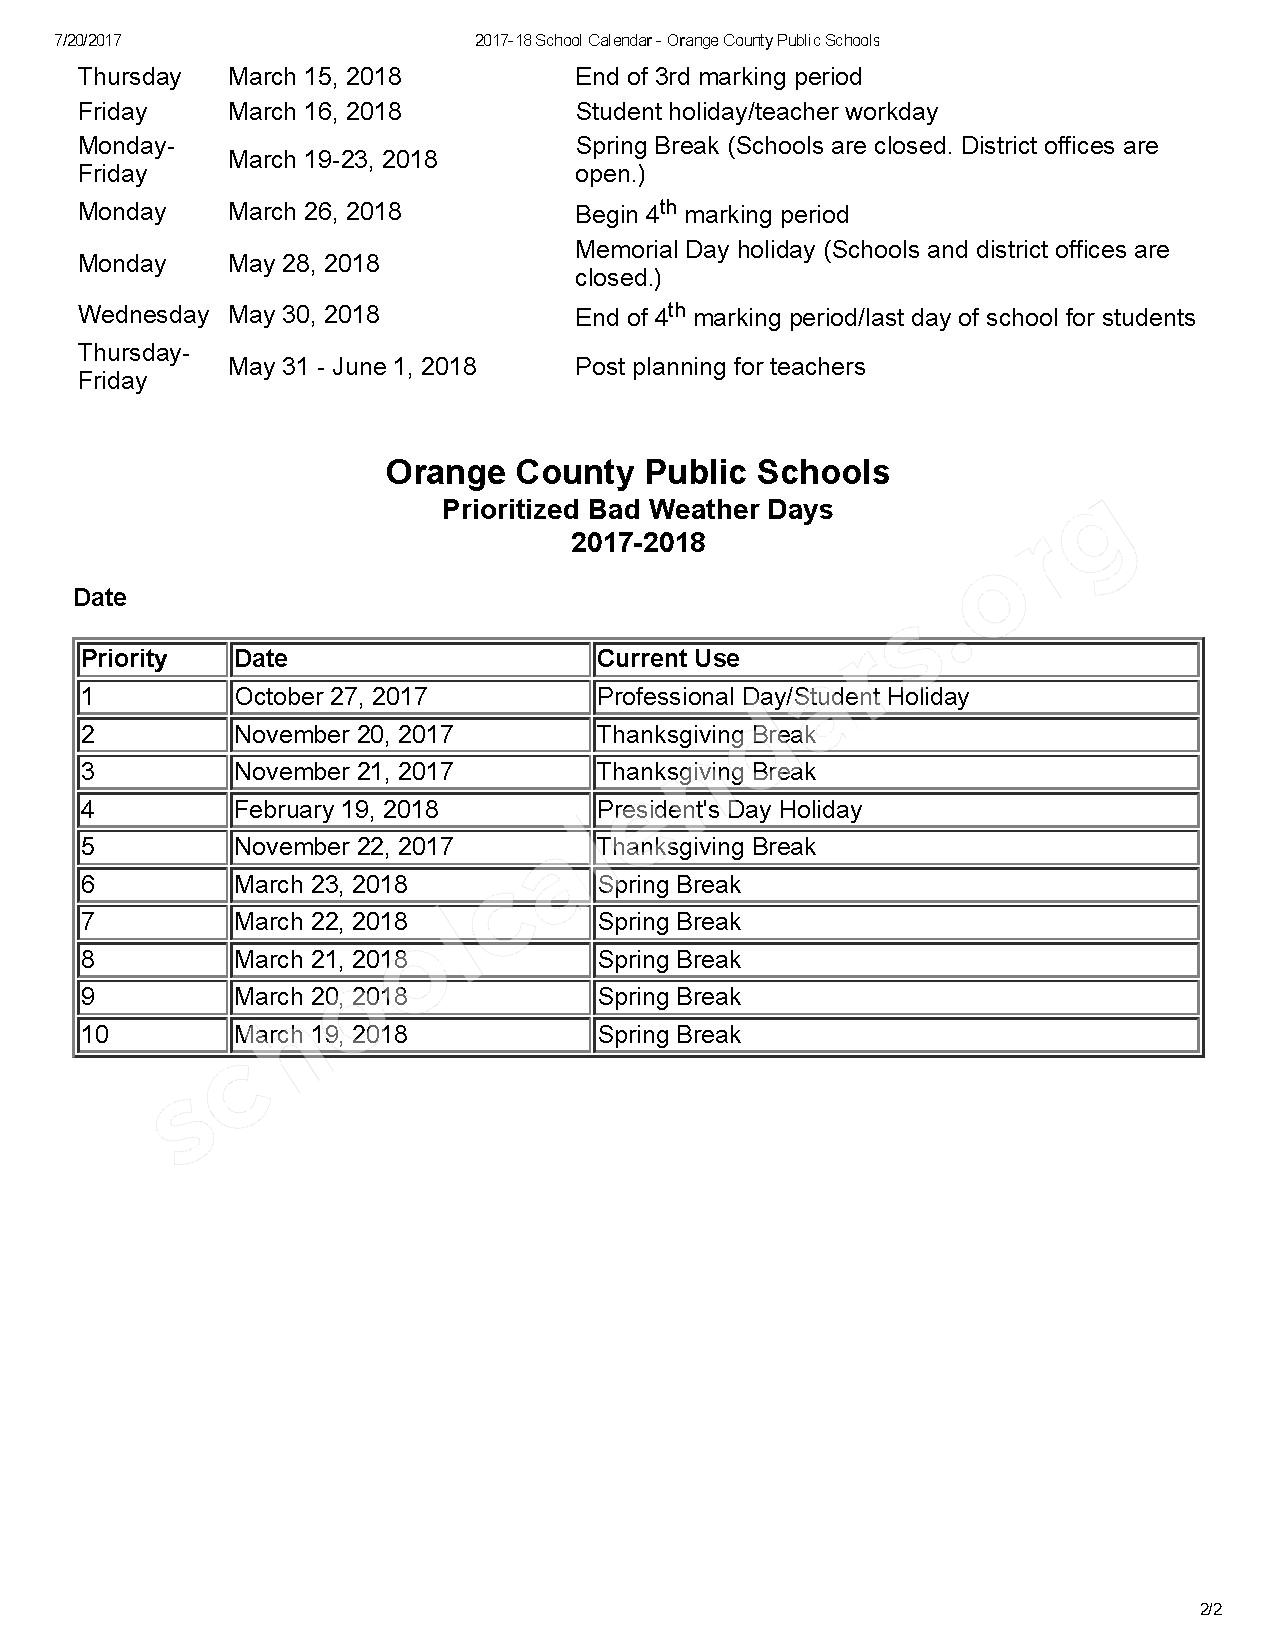 2017 - 2018 OCPS Calendar – Orange County School District – page 2